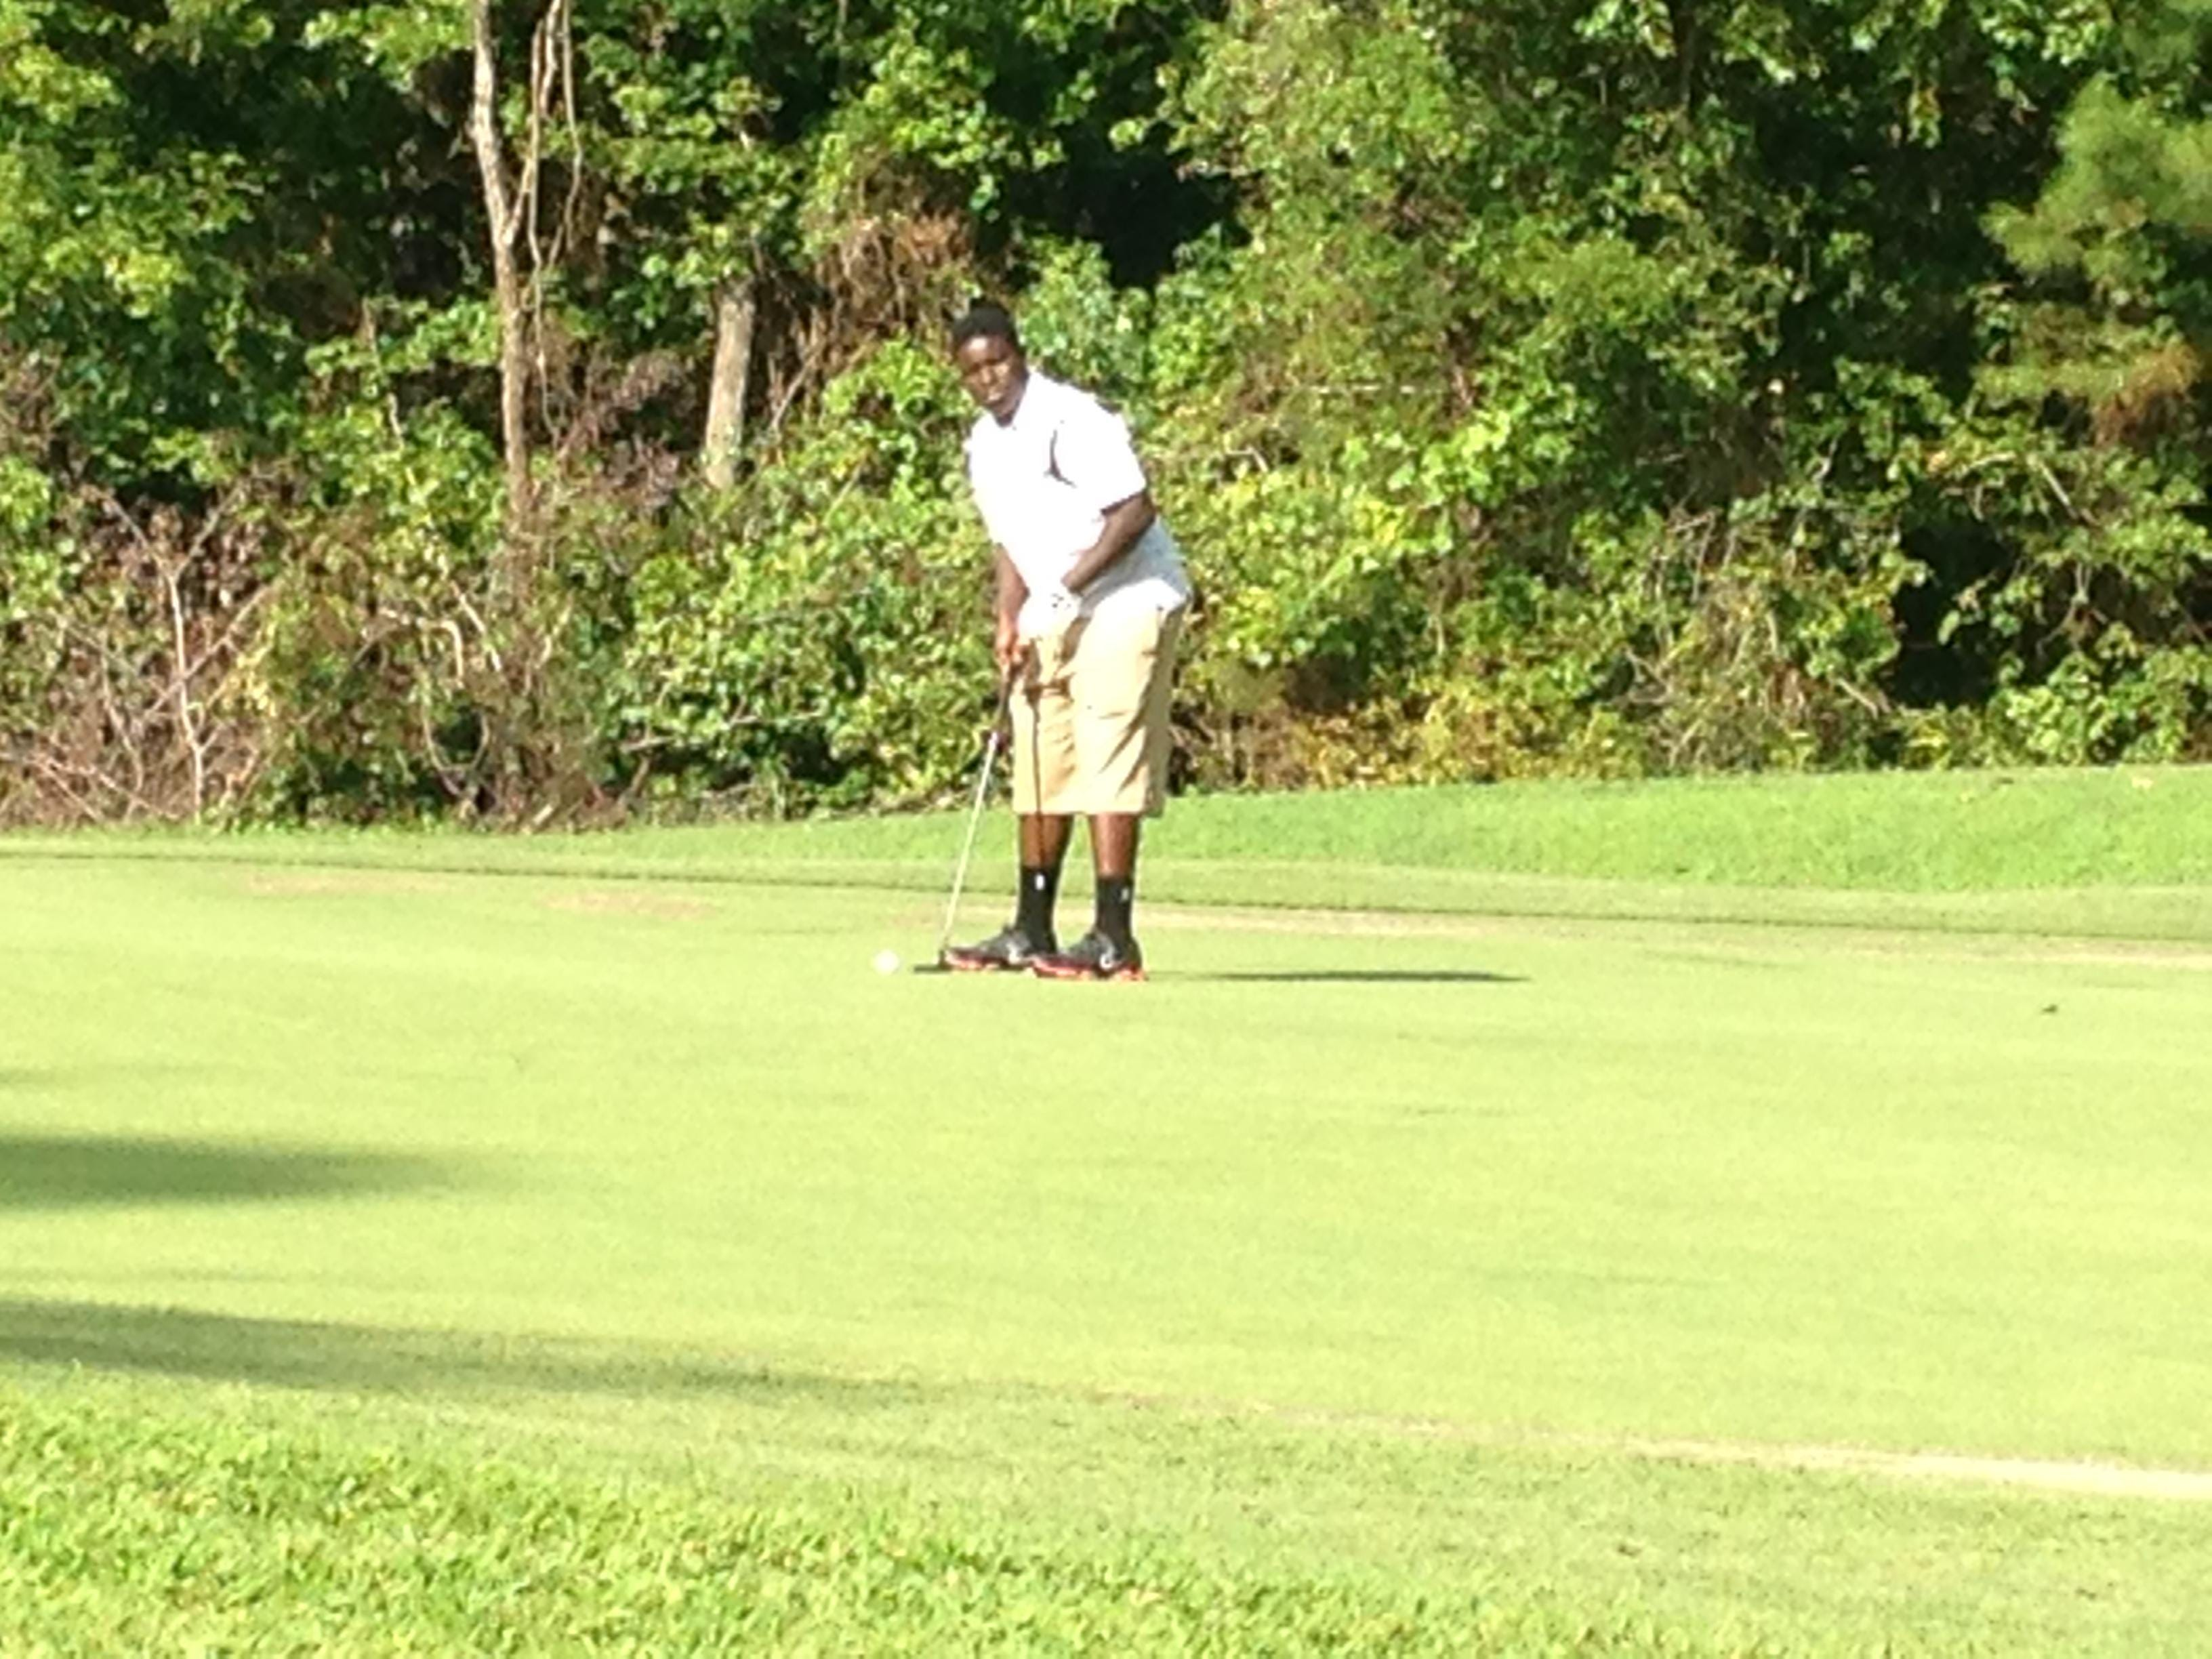 A South Side golfer prepares to putt on Hole No. 1 Tuesday at Chickasaw Golf Course.